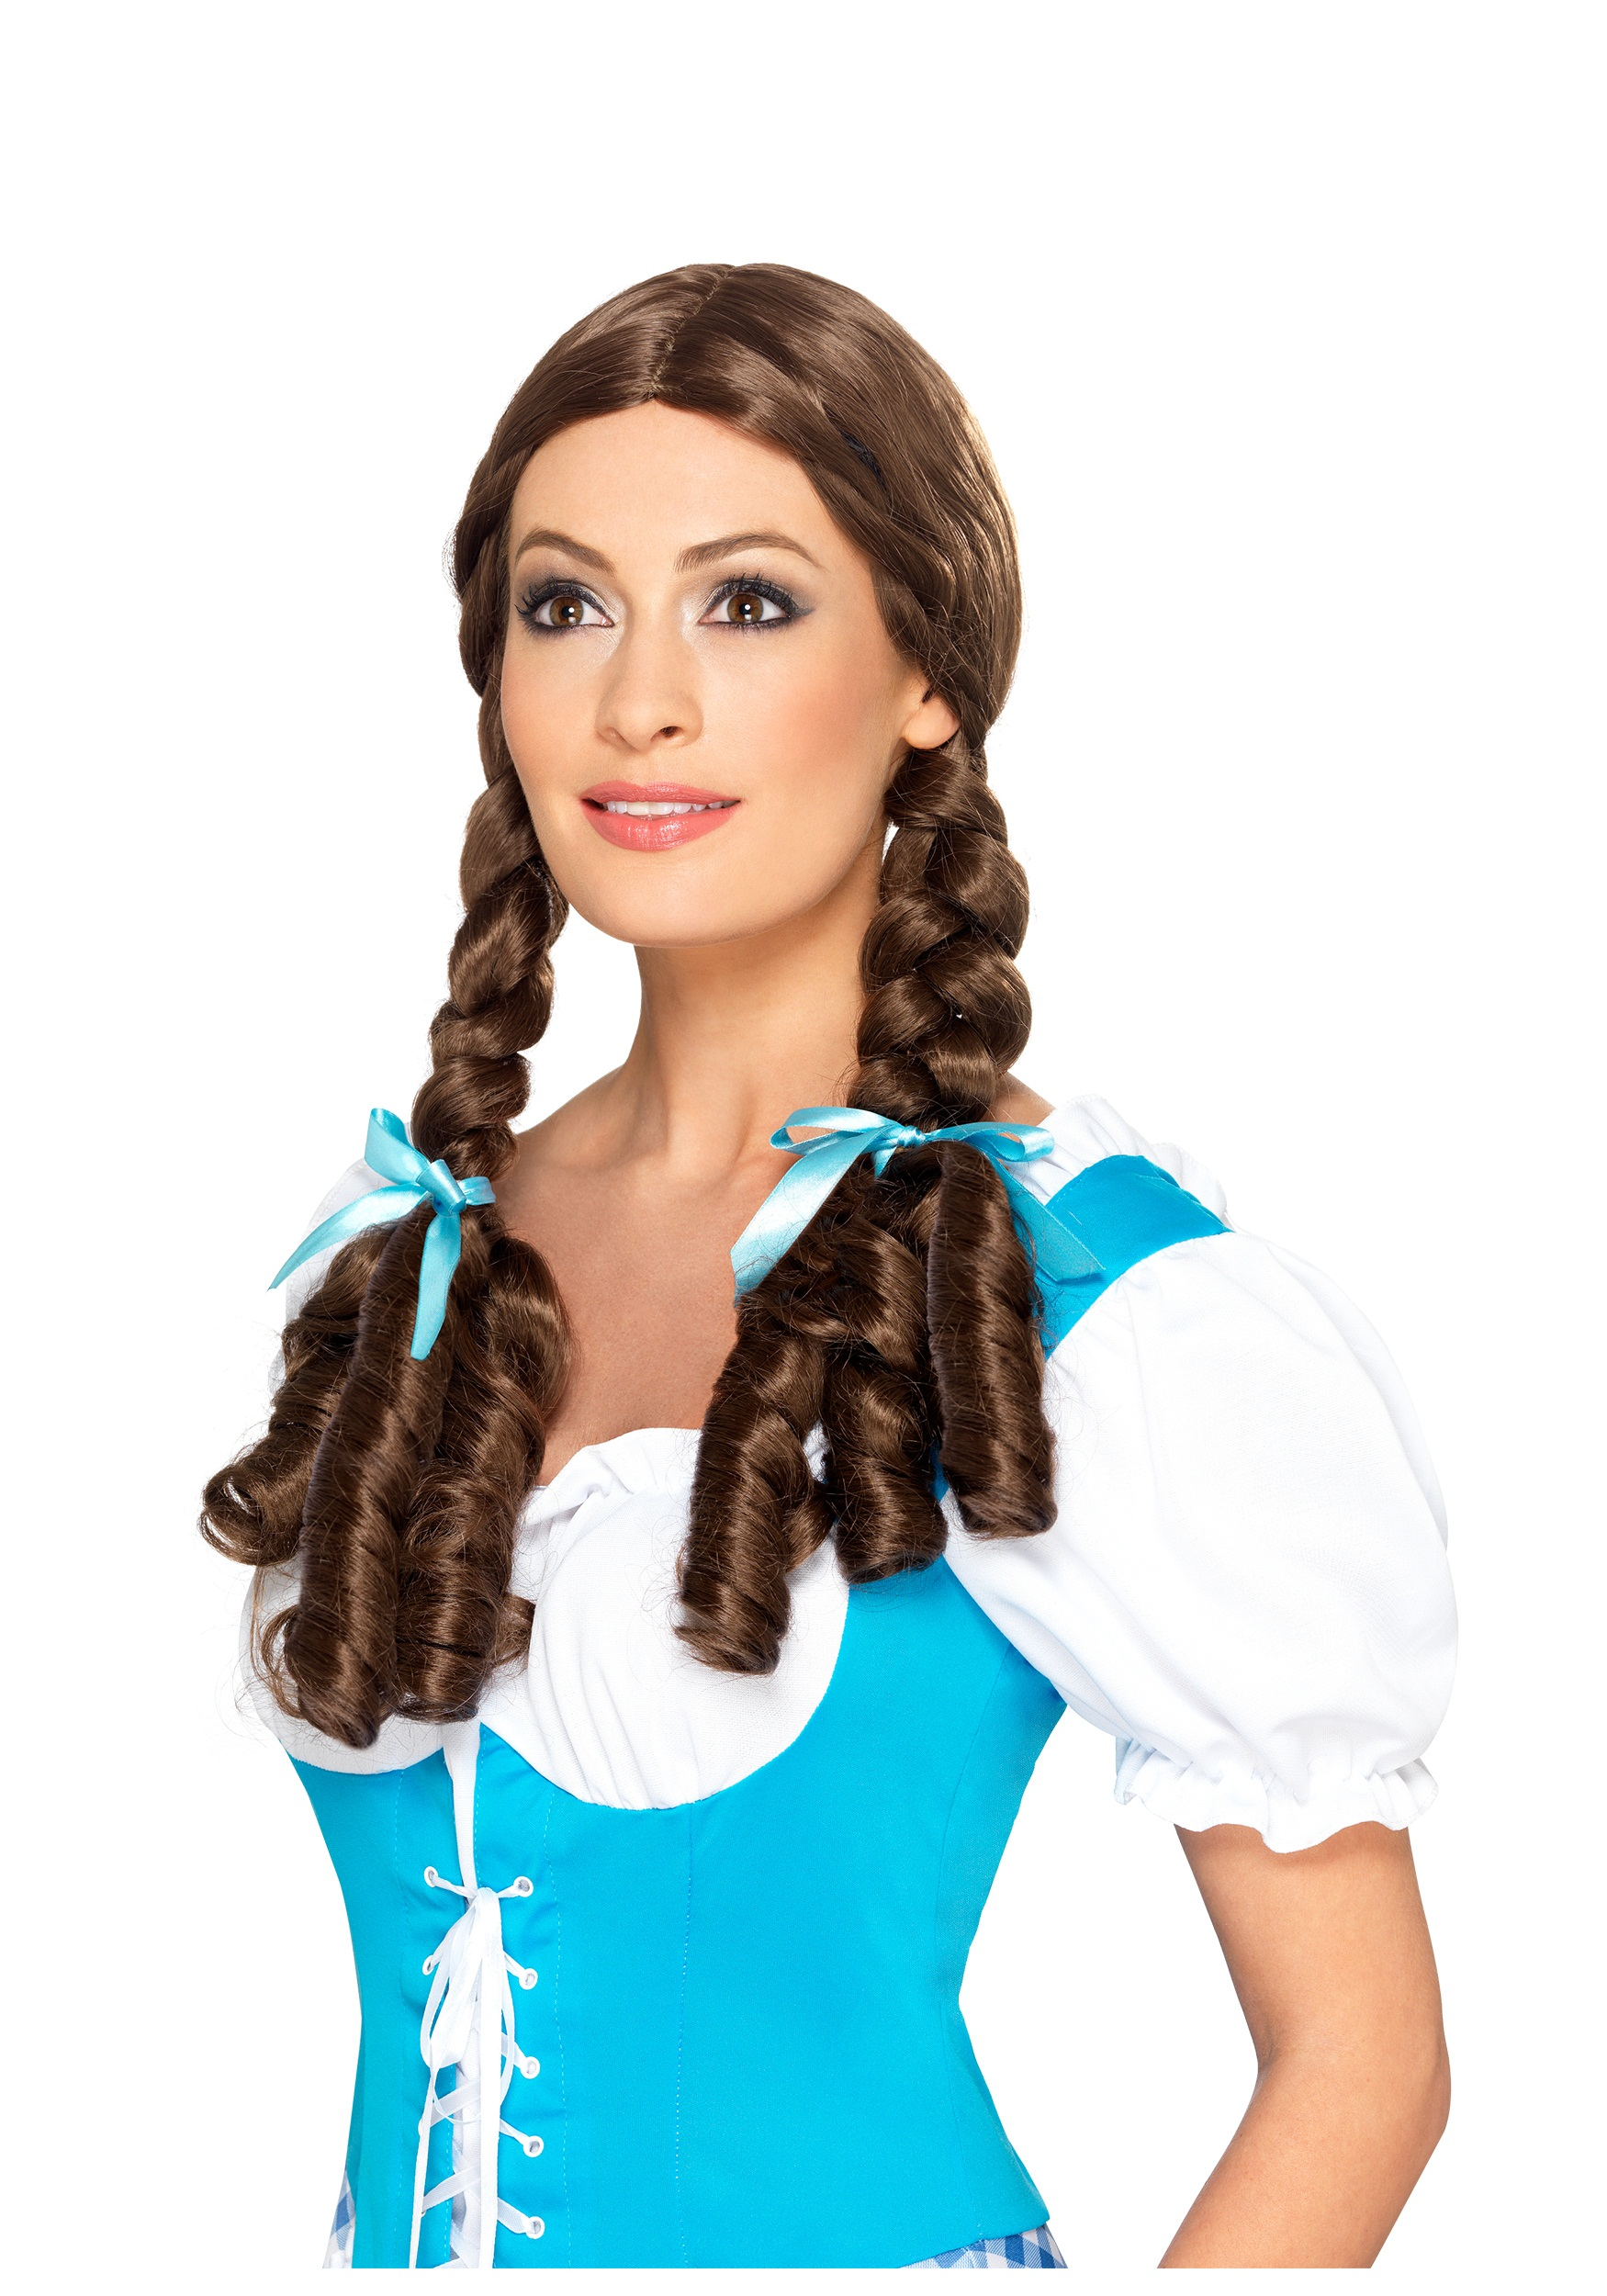 Adult Deluxe Kansas Girl Wig  sc 1 st  Halloween Costumes & Adult Deluxe Kansas Girl Wig - Halloween Costumes